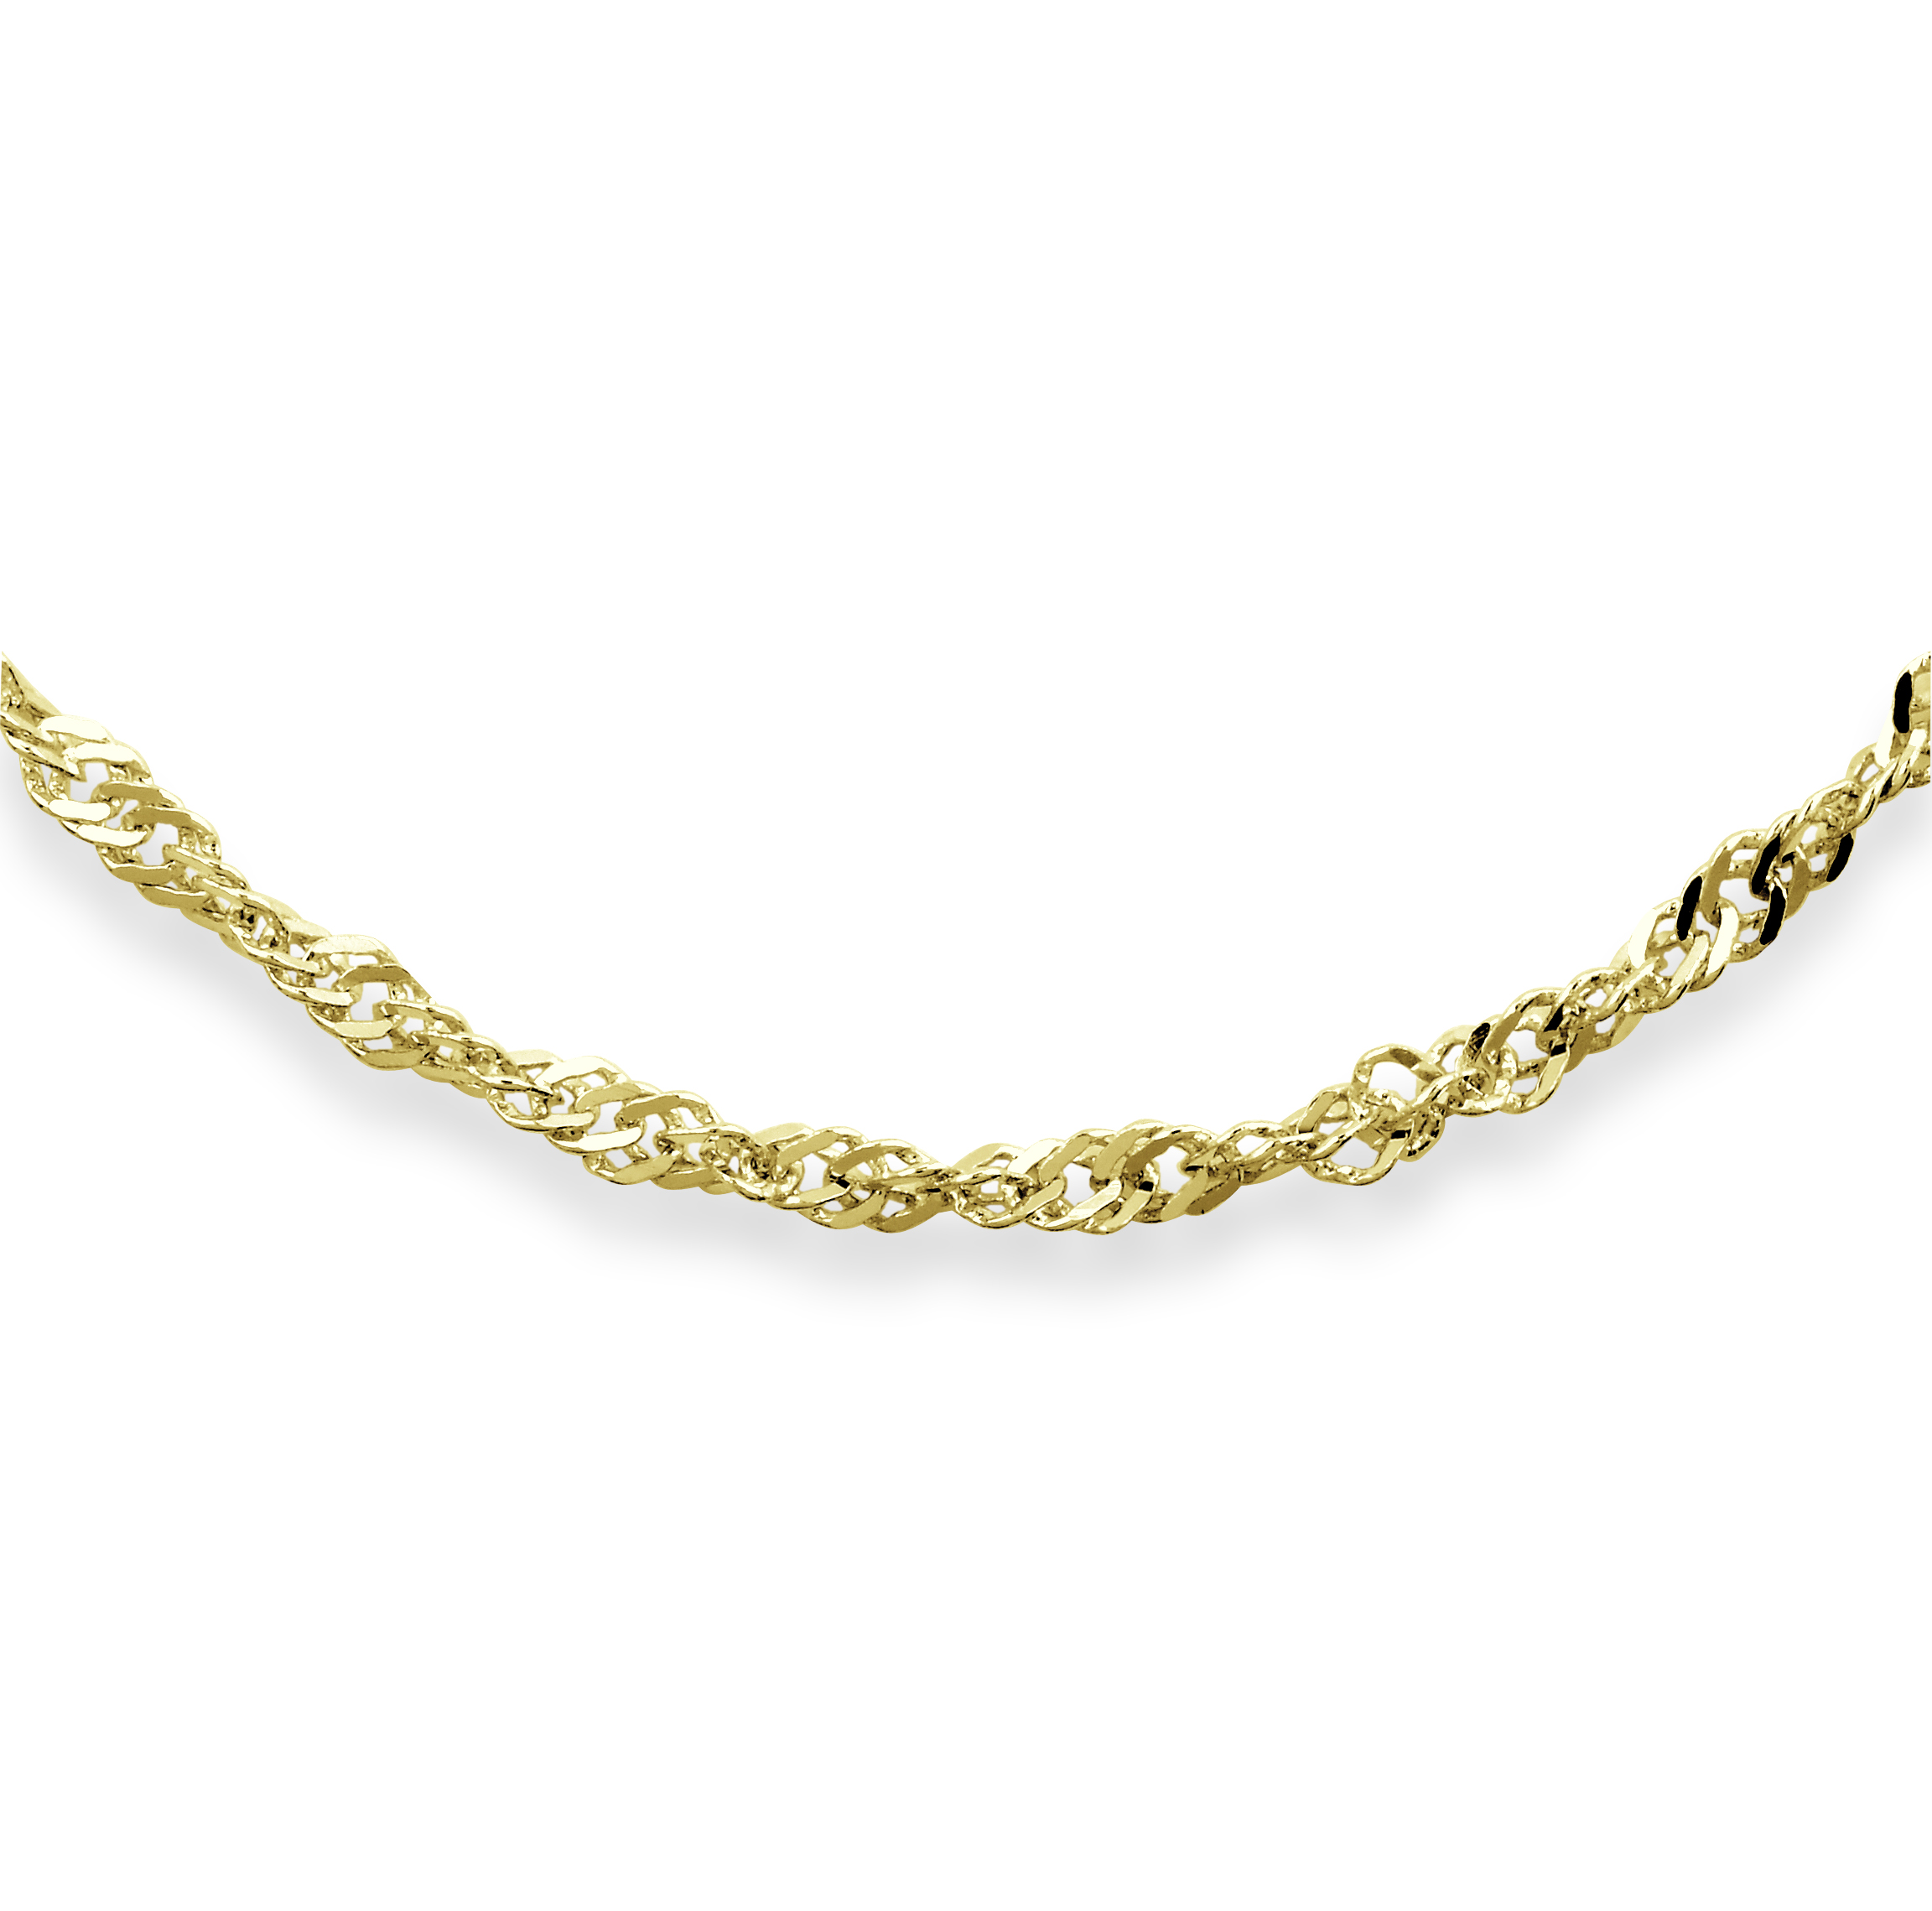 7'' Singapore Chain-bracelet for women - 10K yellow Gold